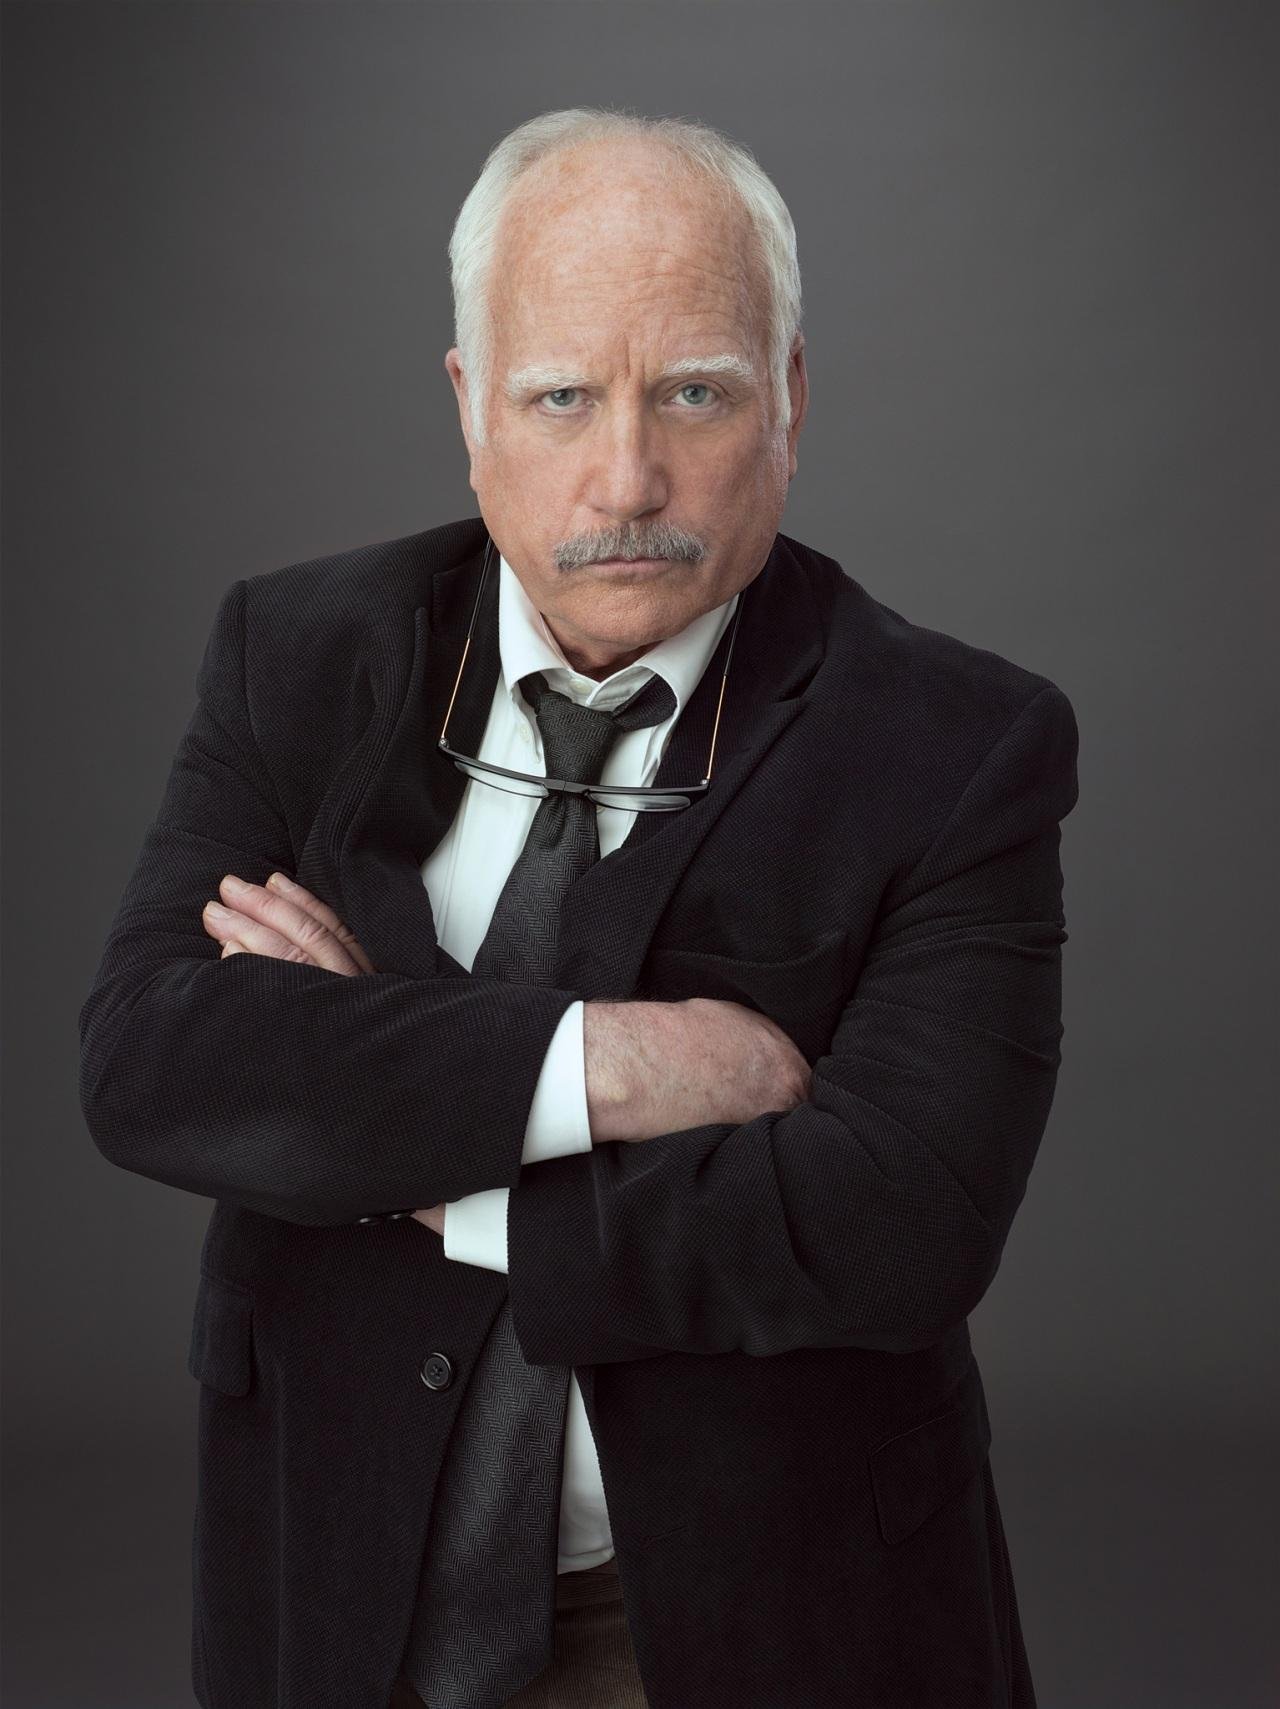 Richard Dreyfuss Wallpapers hd